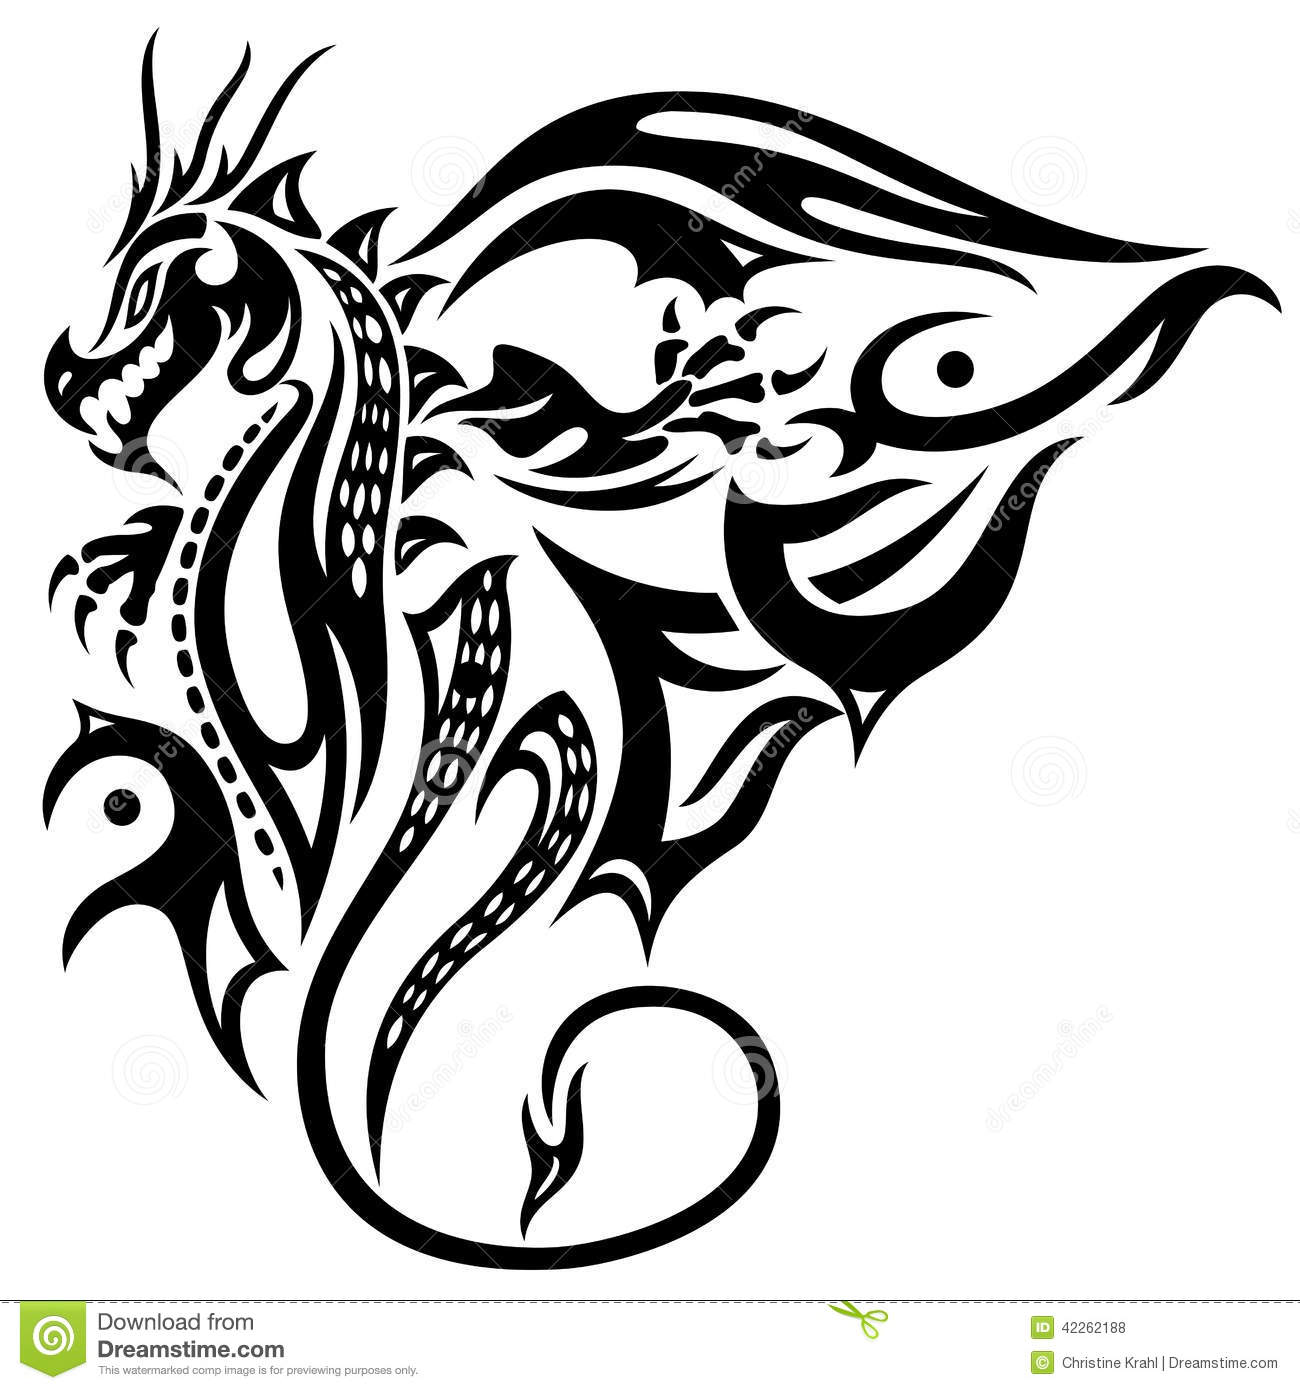 Dragon, wings